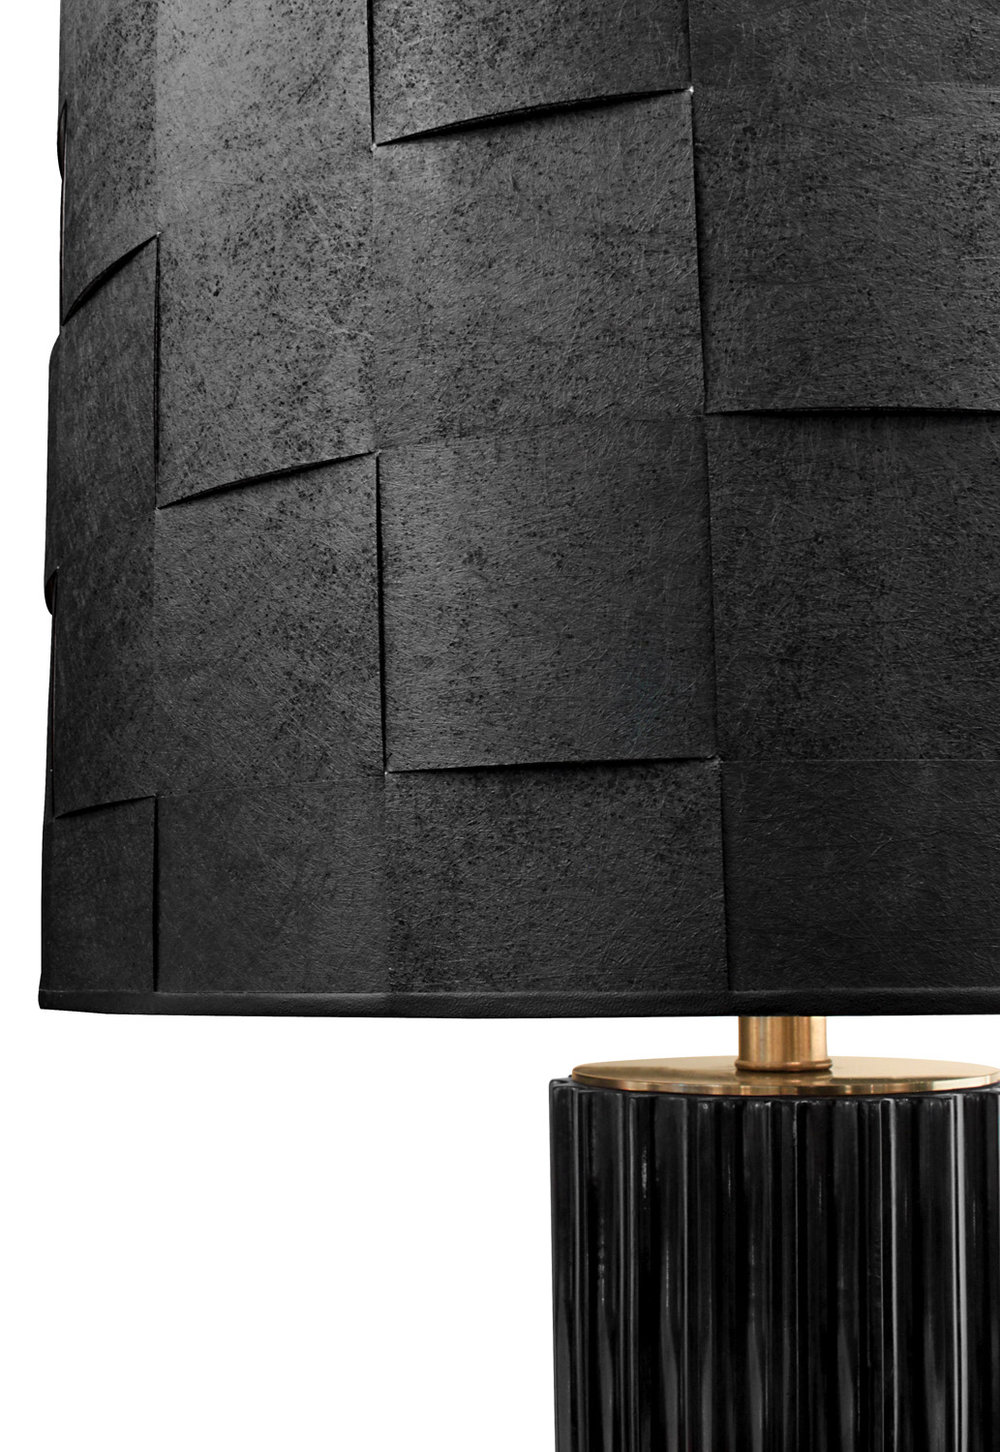 Mont 220 black blk+bronze legs tablelamps316 detail6 hires.jpg